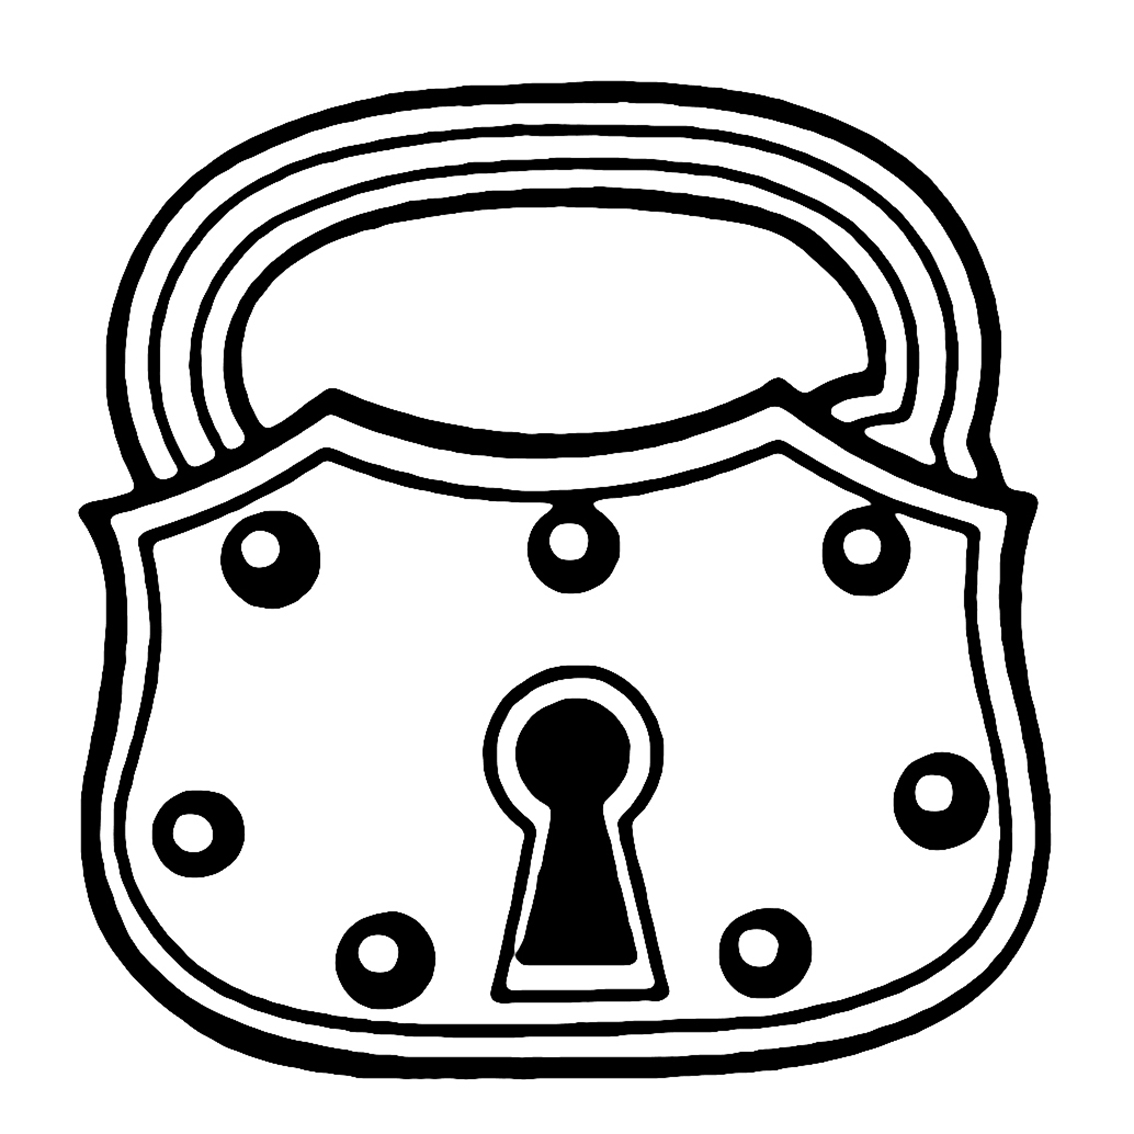 12 Skeleton Key Clipart Images And Locks